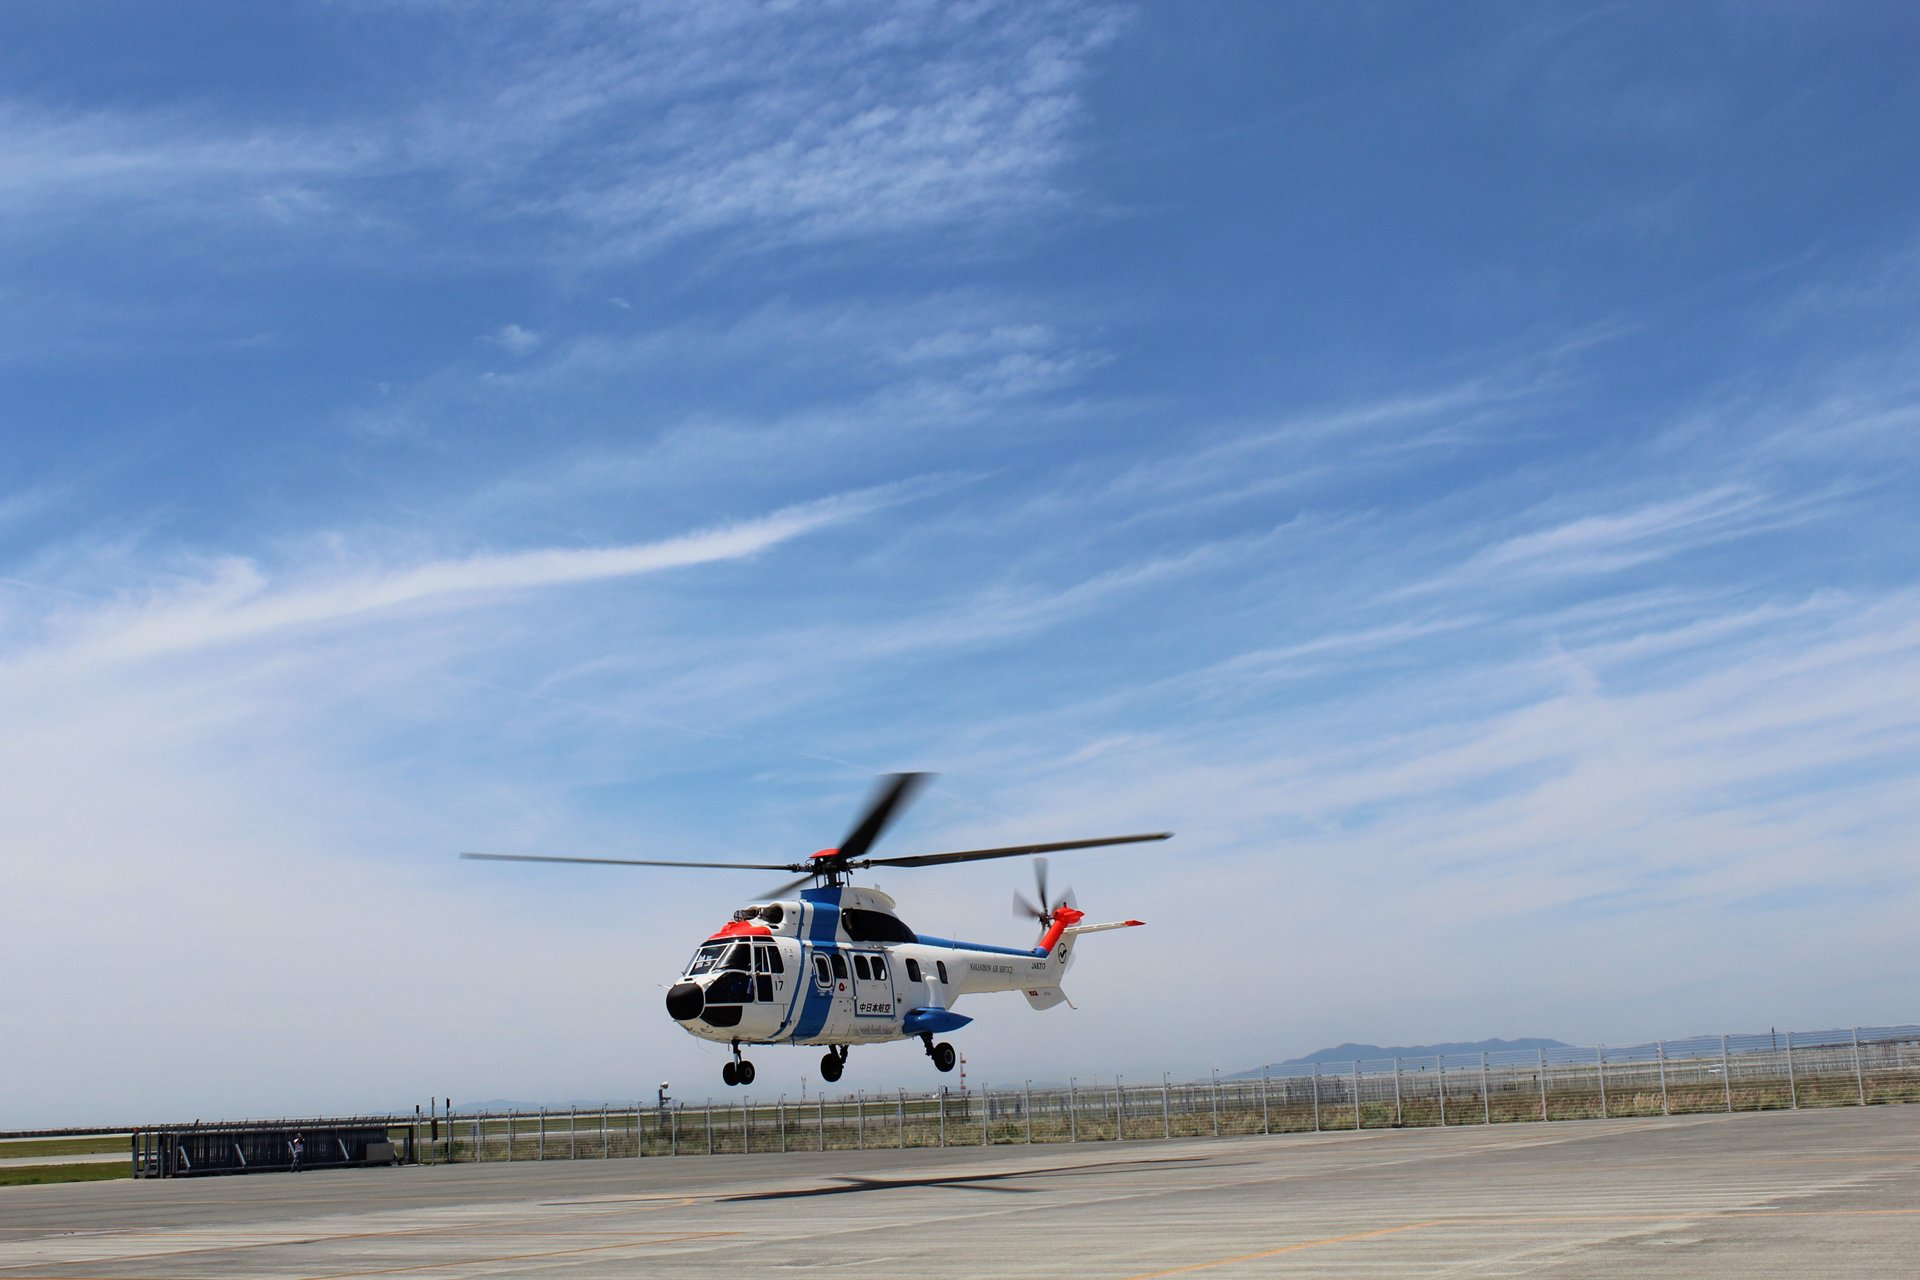 Nakanihon Air orders one H215 heavy helicopter to build up their fleet capabilities. The twin-engine, heavy-lift H215 is a member of the Super Puma helicopter family, known for its high availability rate, performance, and competitive operating cost.